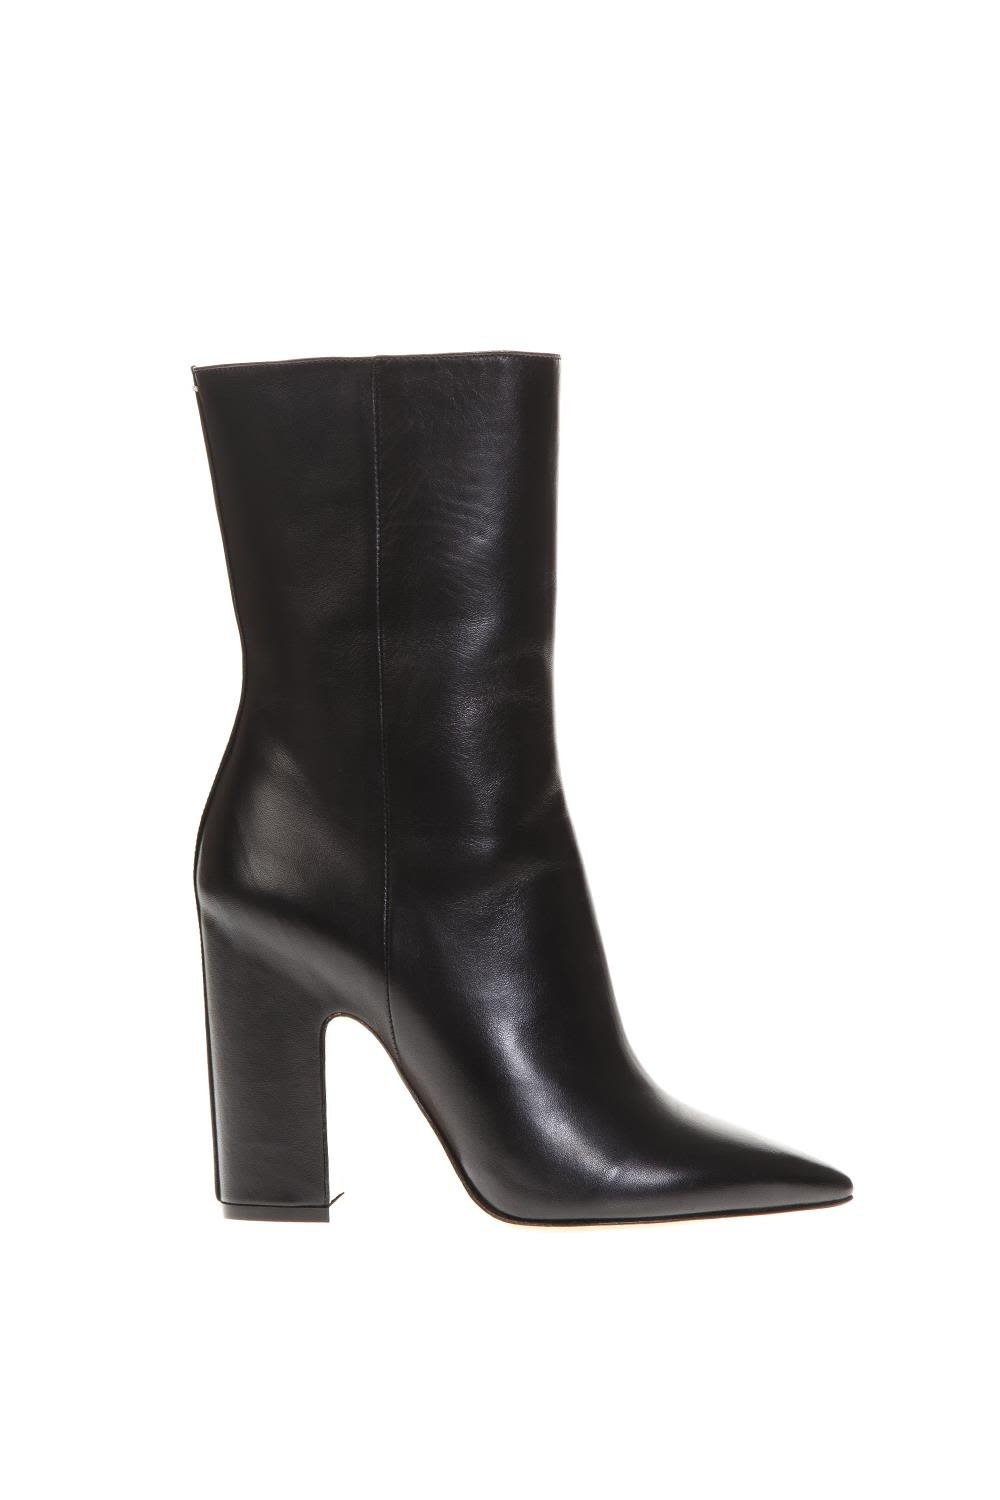 Maison Margiela Black Pointed Leather Ankle Boots